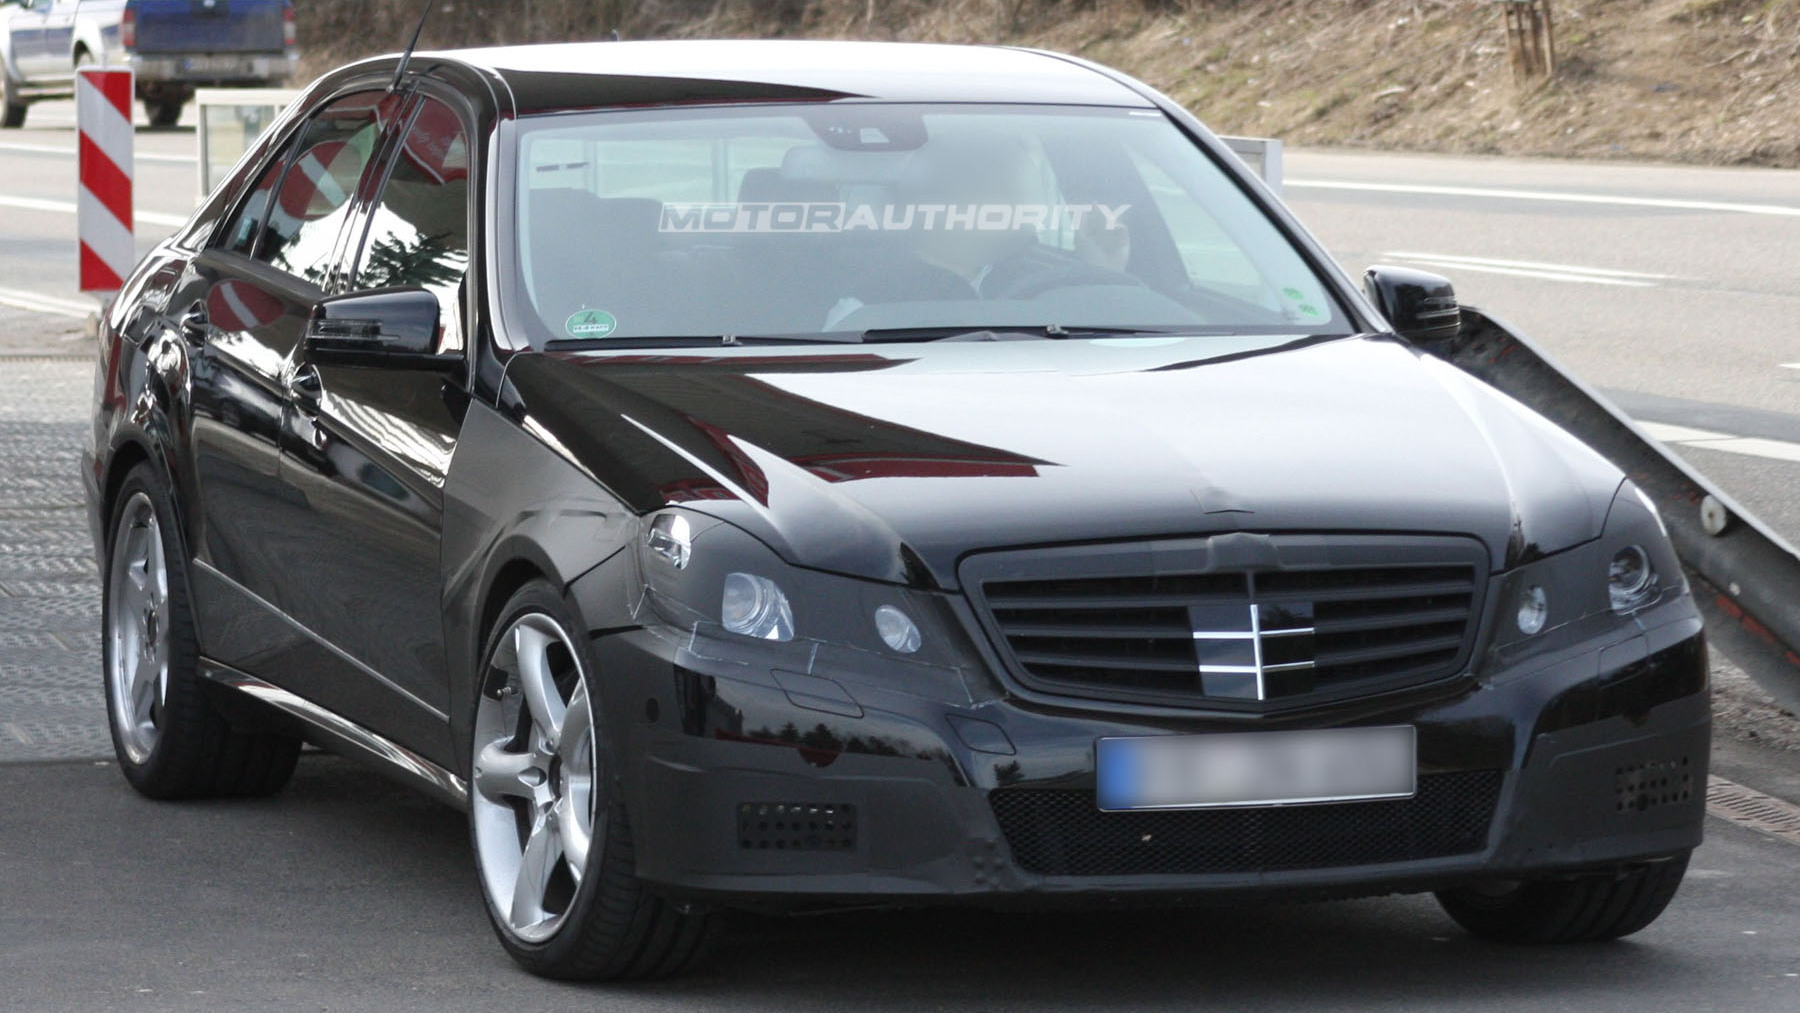 2010 mercedes benz e63 amg spy shots march 002